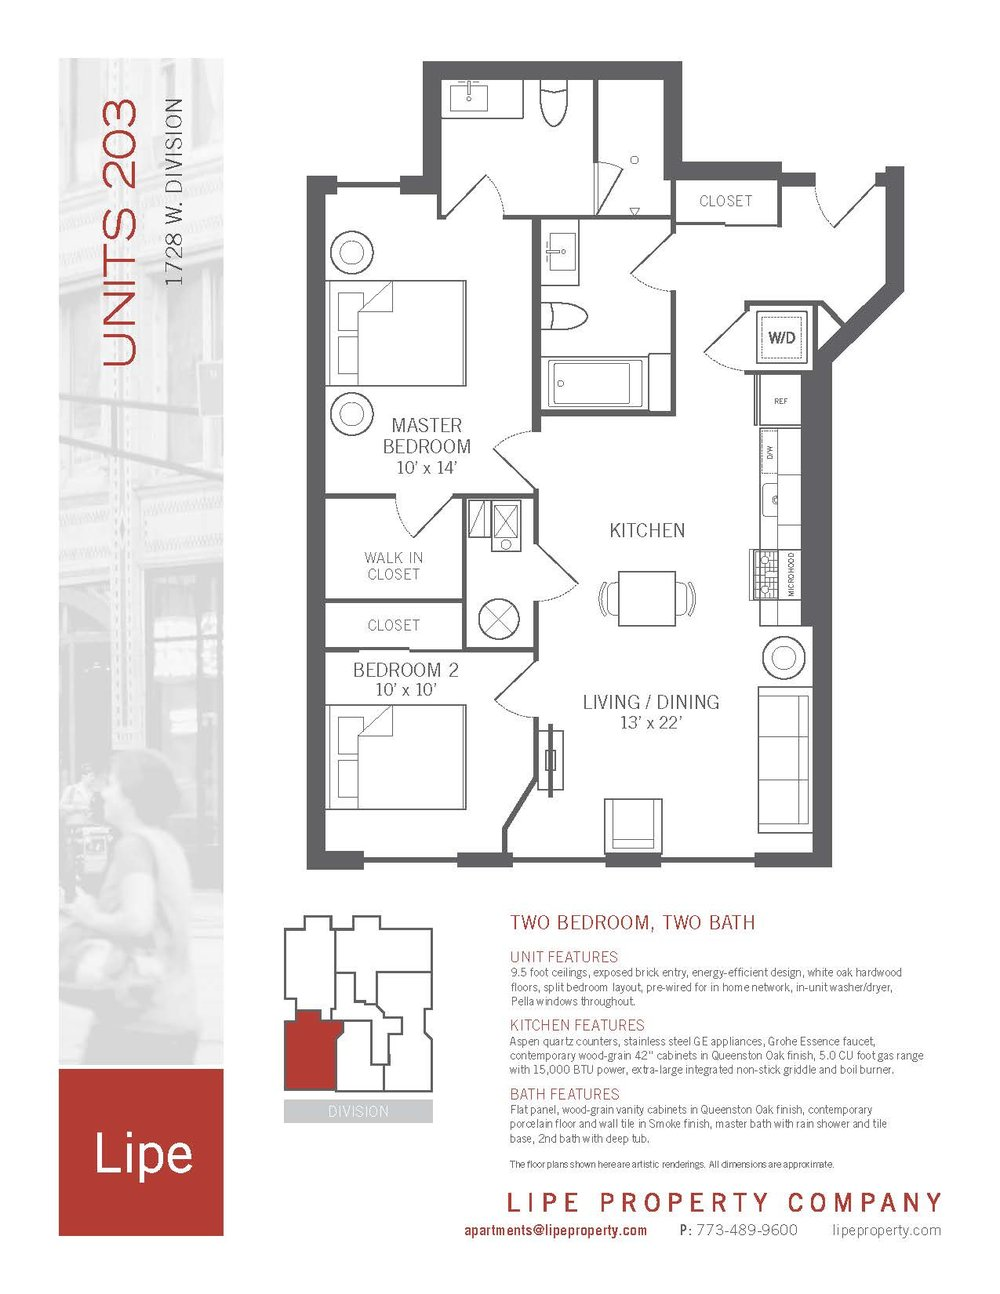 1728-West-Division-203-Floorplan-Chicago-apartment-for-rent.jpg